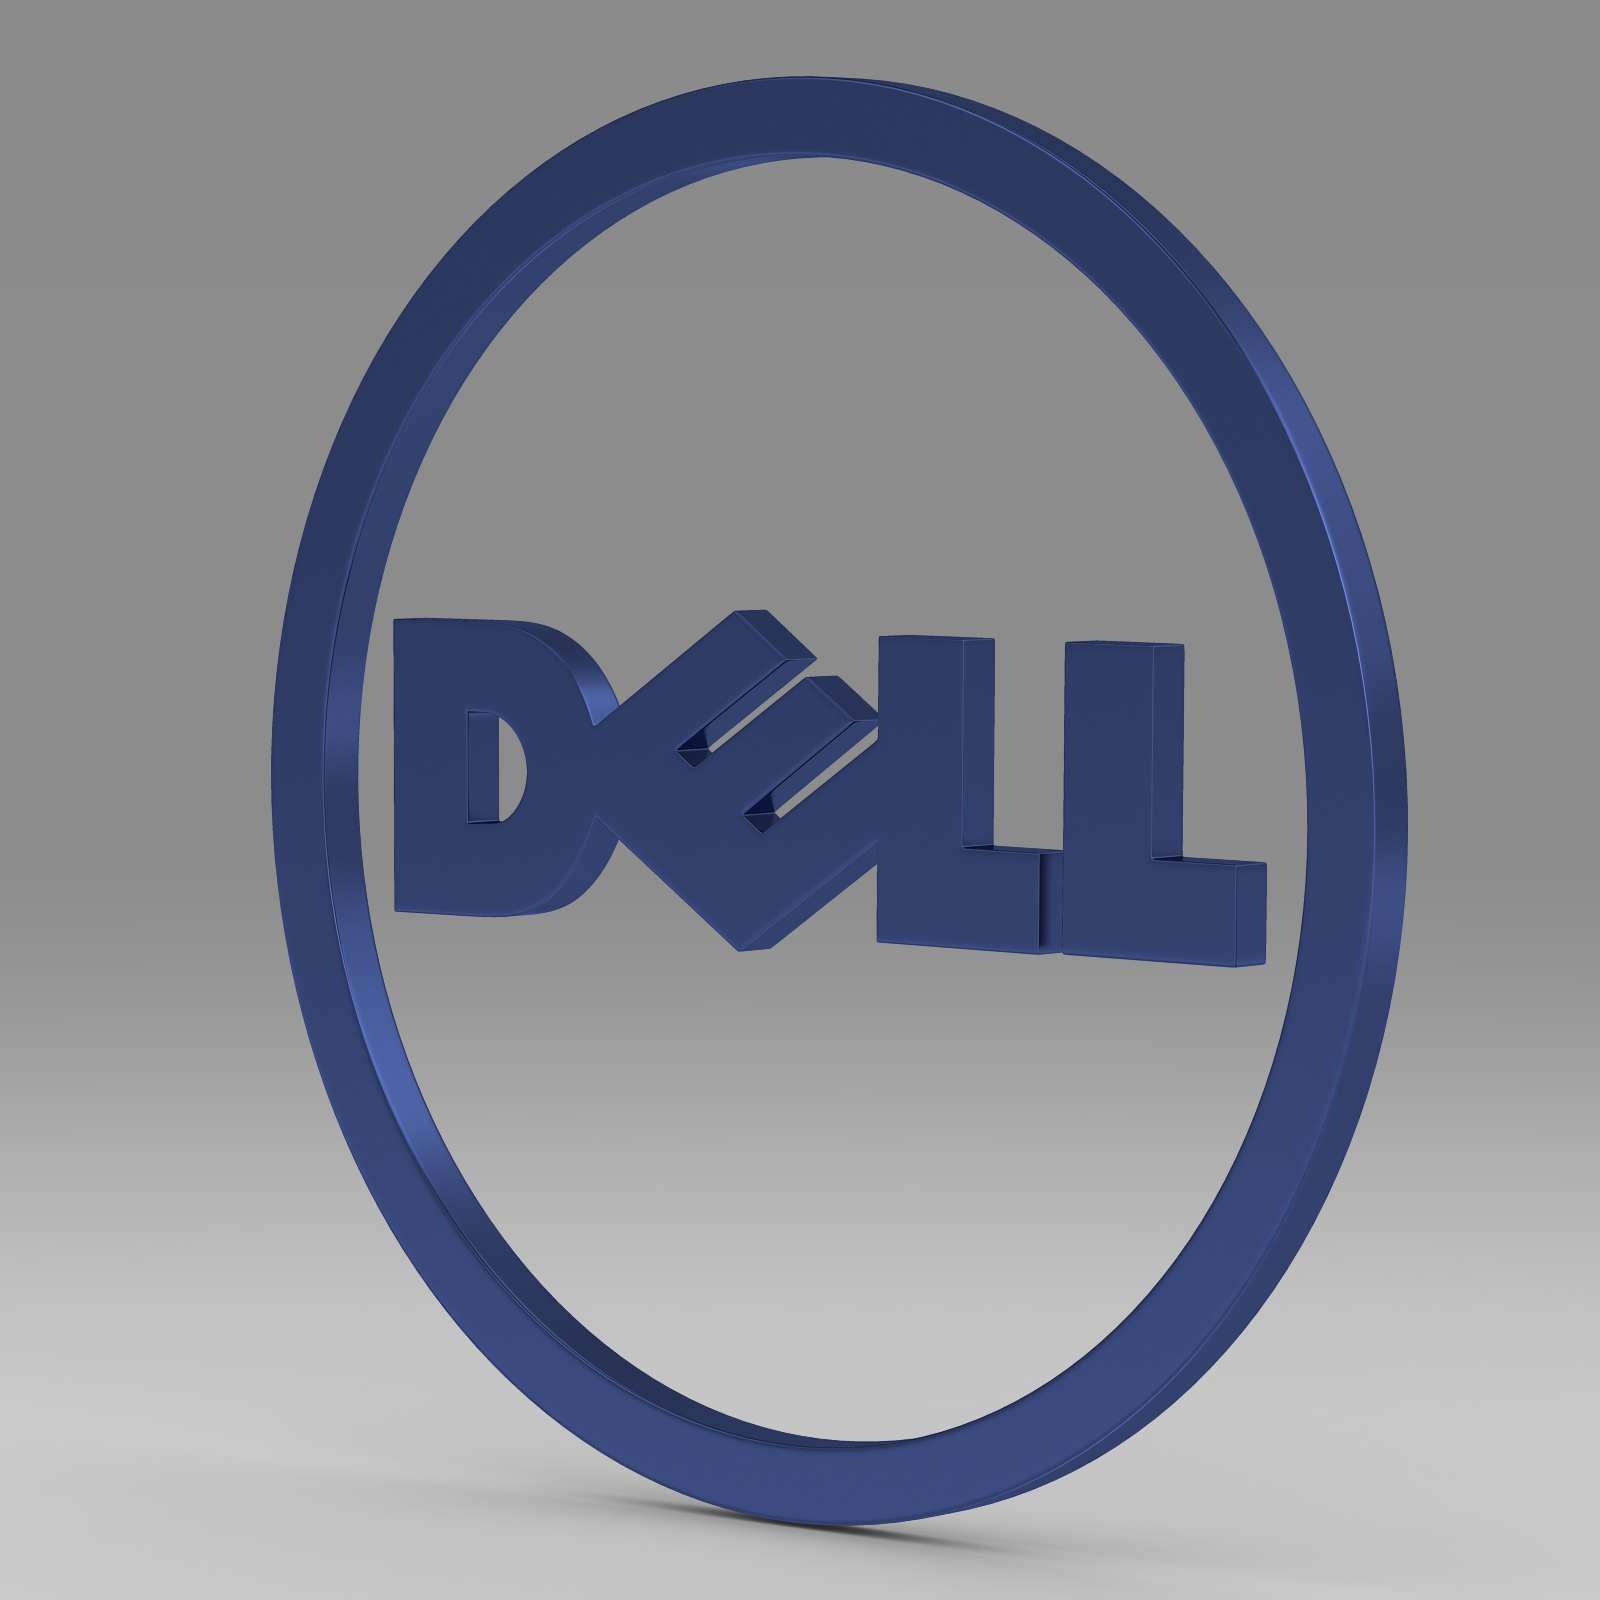 dell logo 2 3d model 3ds fbx c4d lwo ma mb hrc xsi  obj 223627